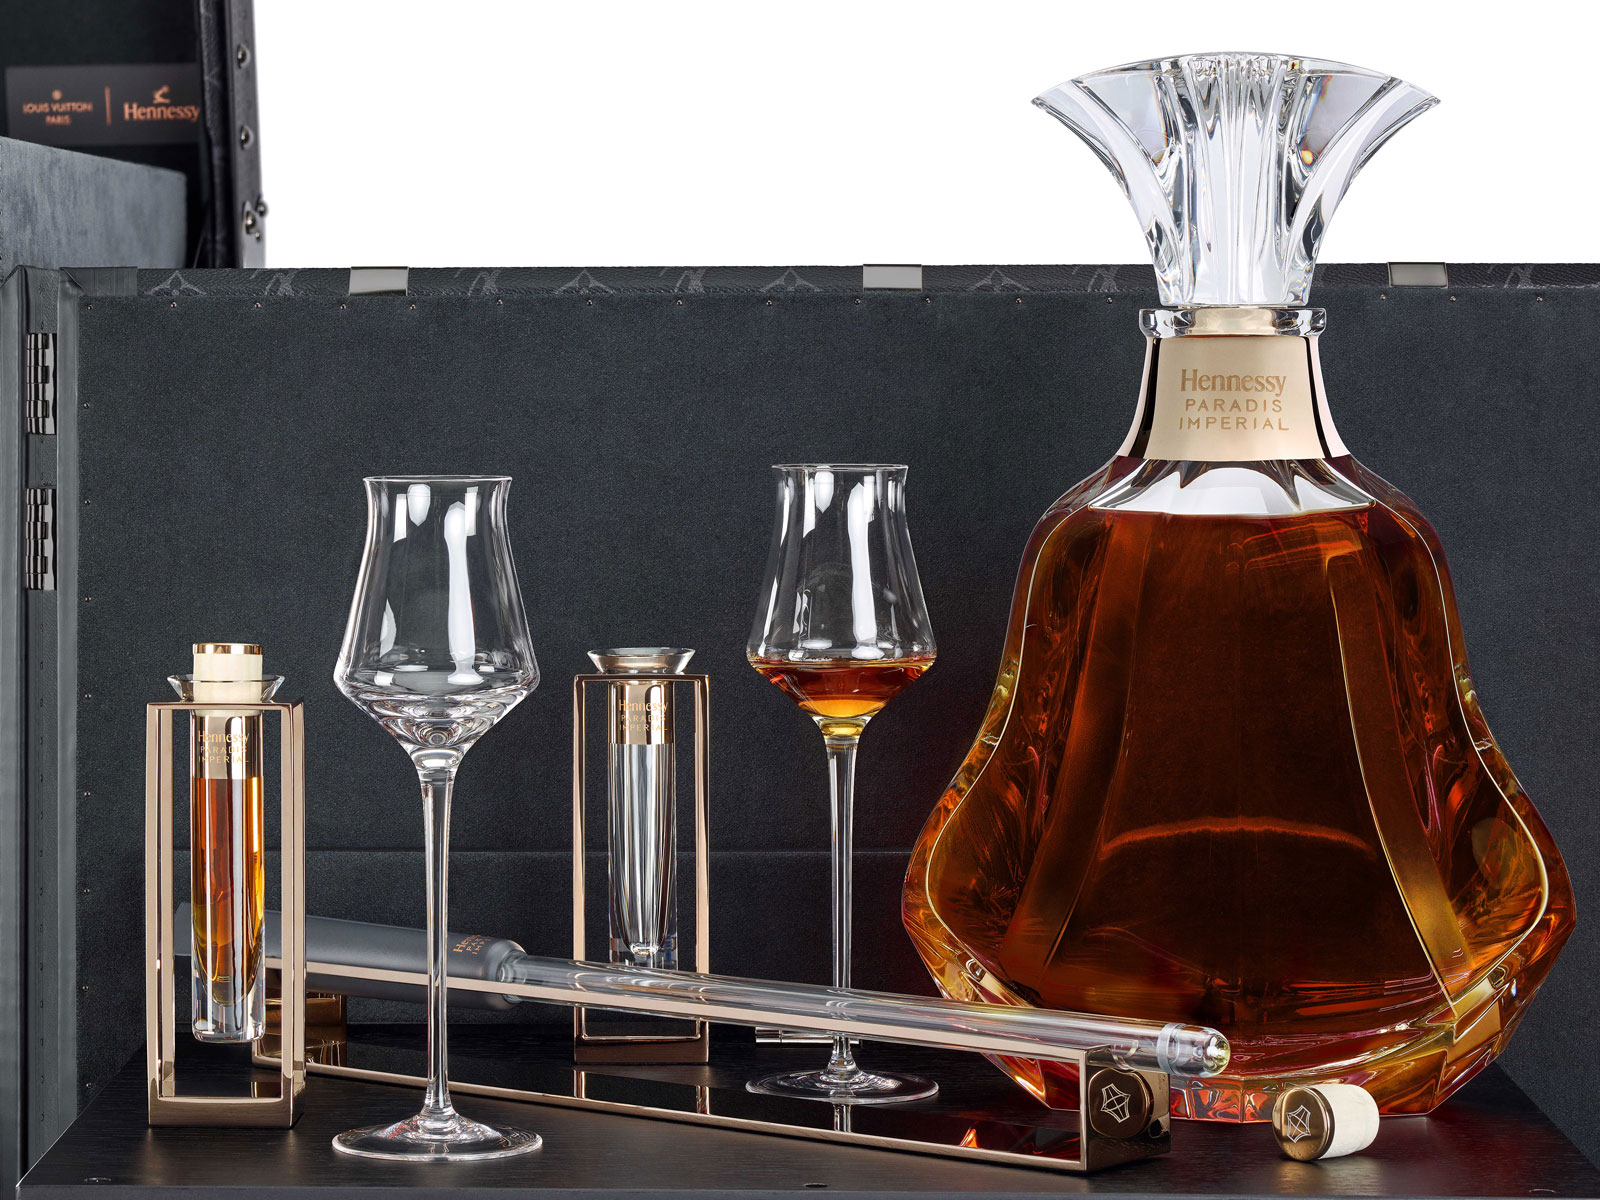 How Cognac Became a Status Symbol in China